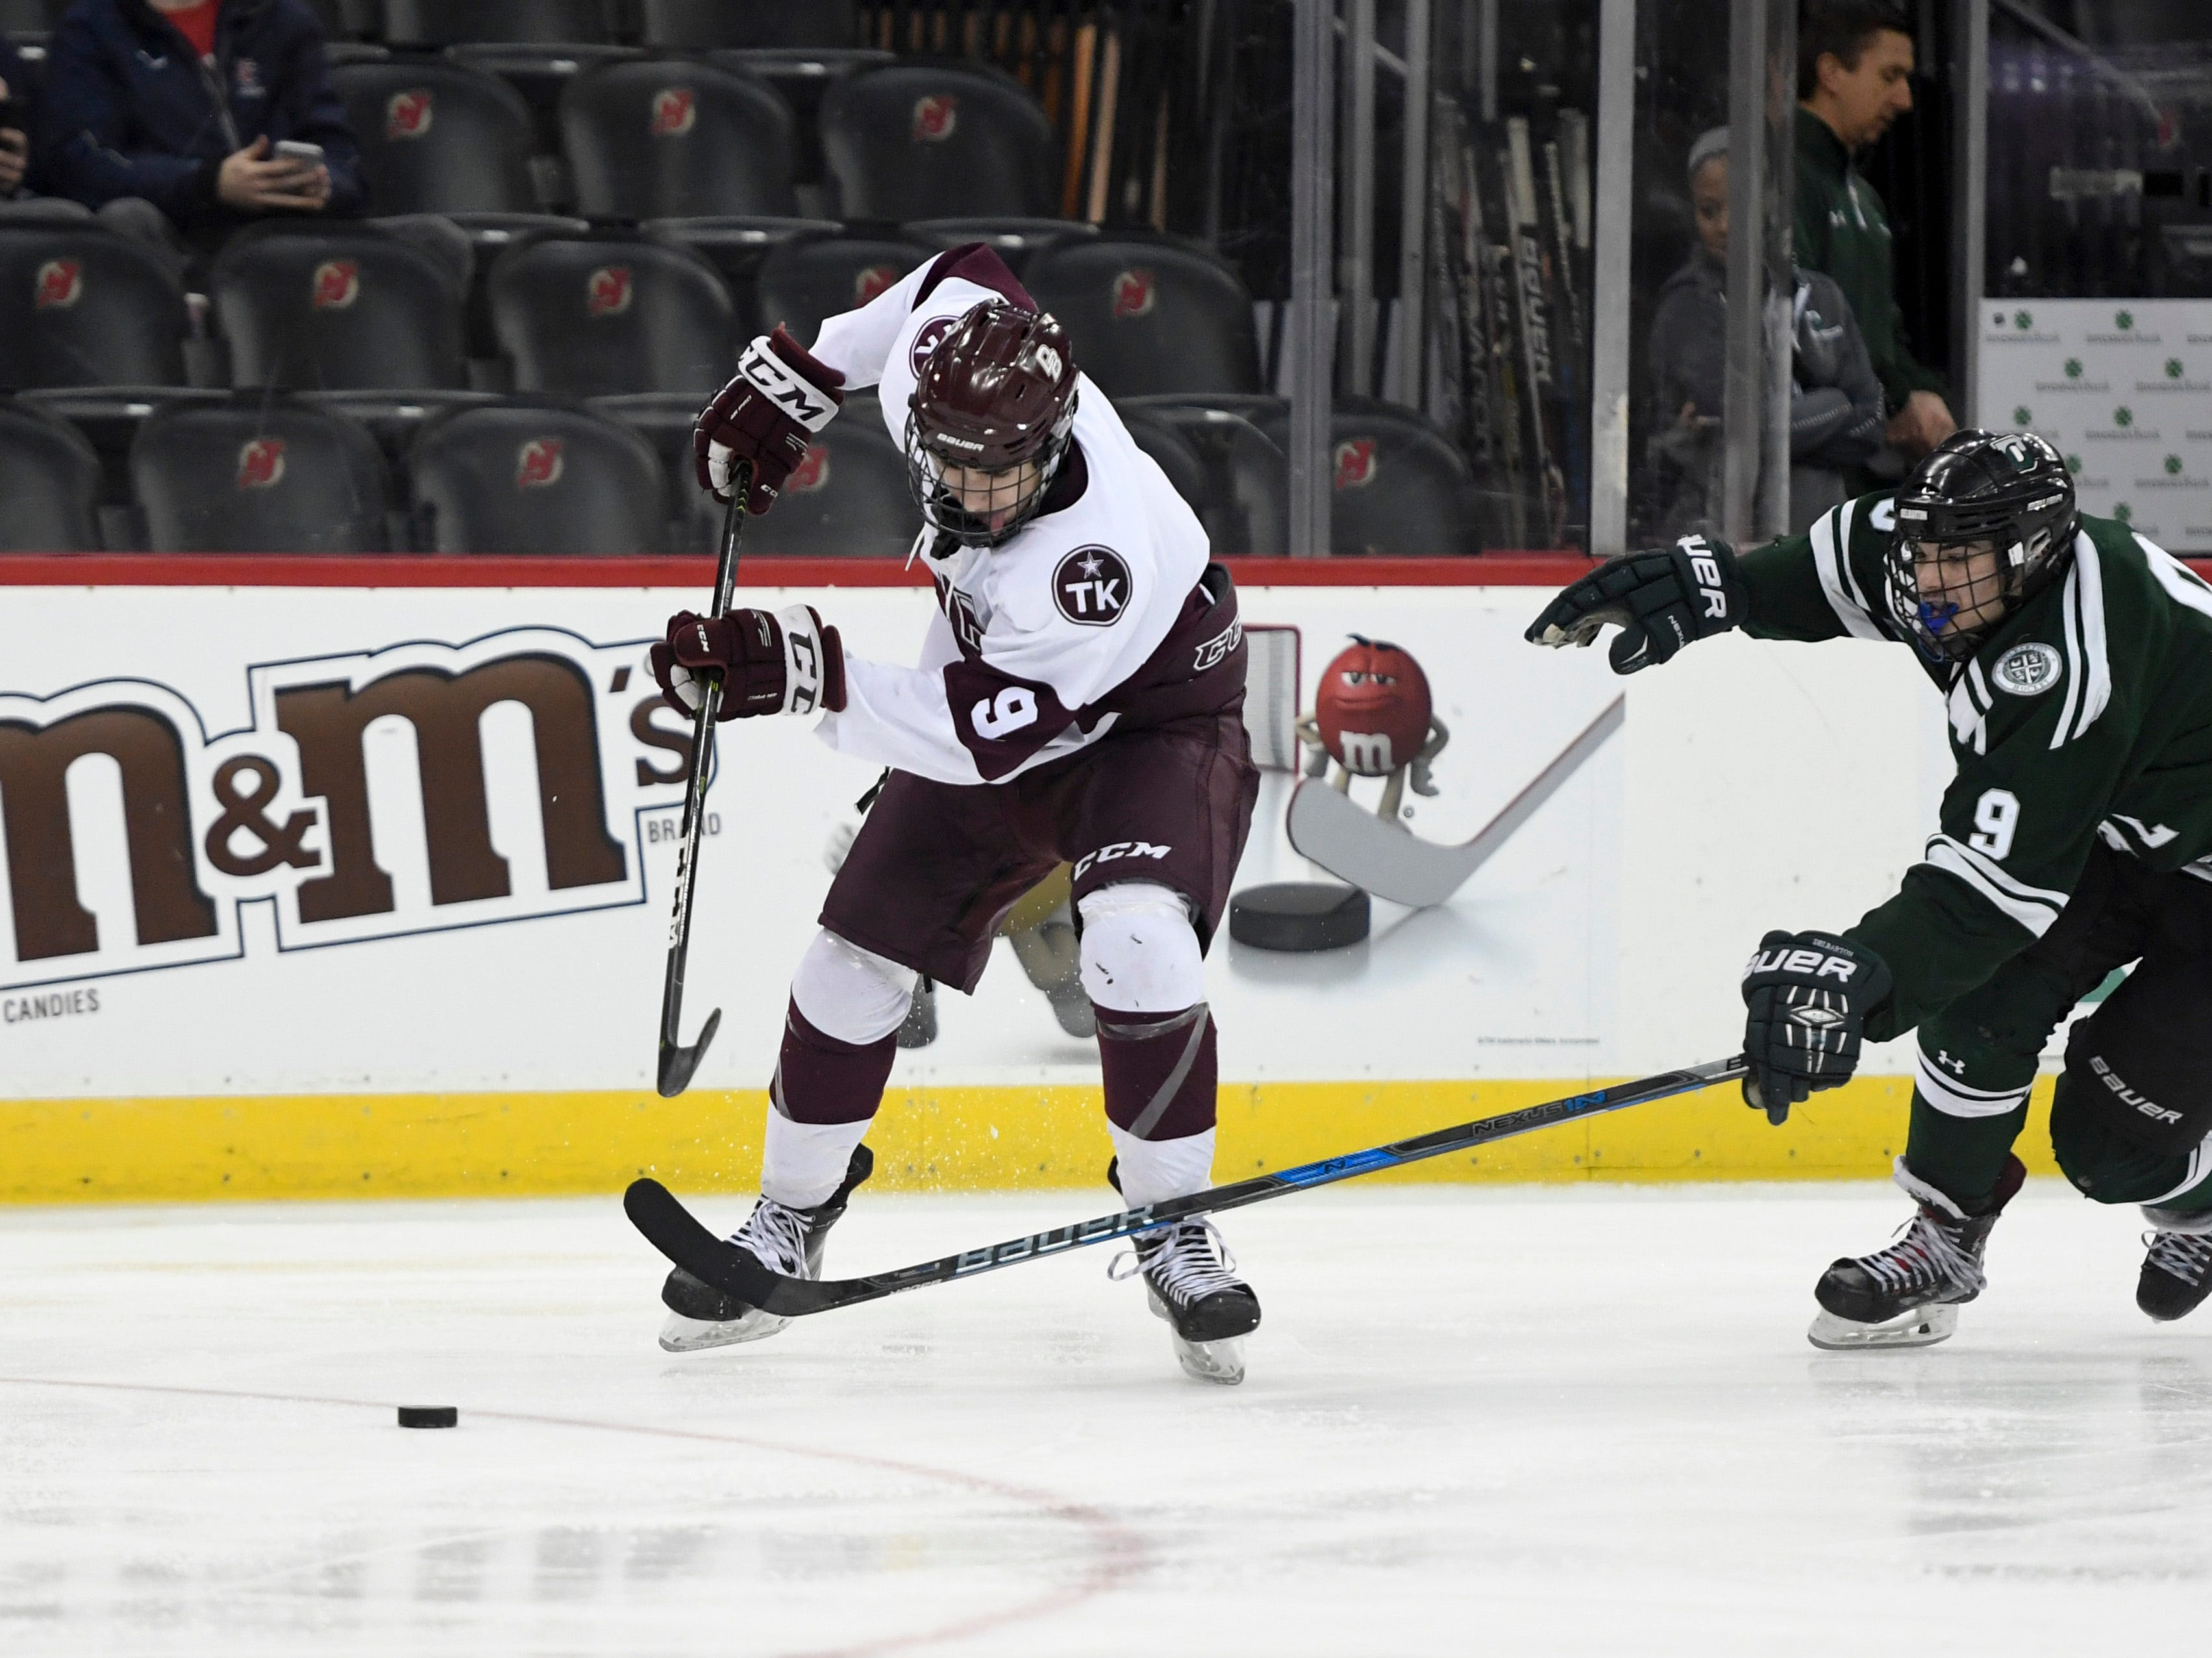 Don Bosco's Damien Carfagna, left, and Delbarton's Michael Balzarotti battle for possession in the second period of the Non-Public ice hockey final at the Prudential Center on Monday, March 4, 2019, in Newark.